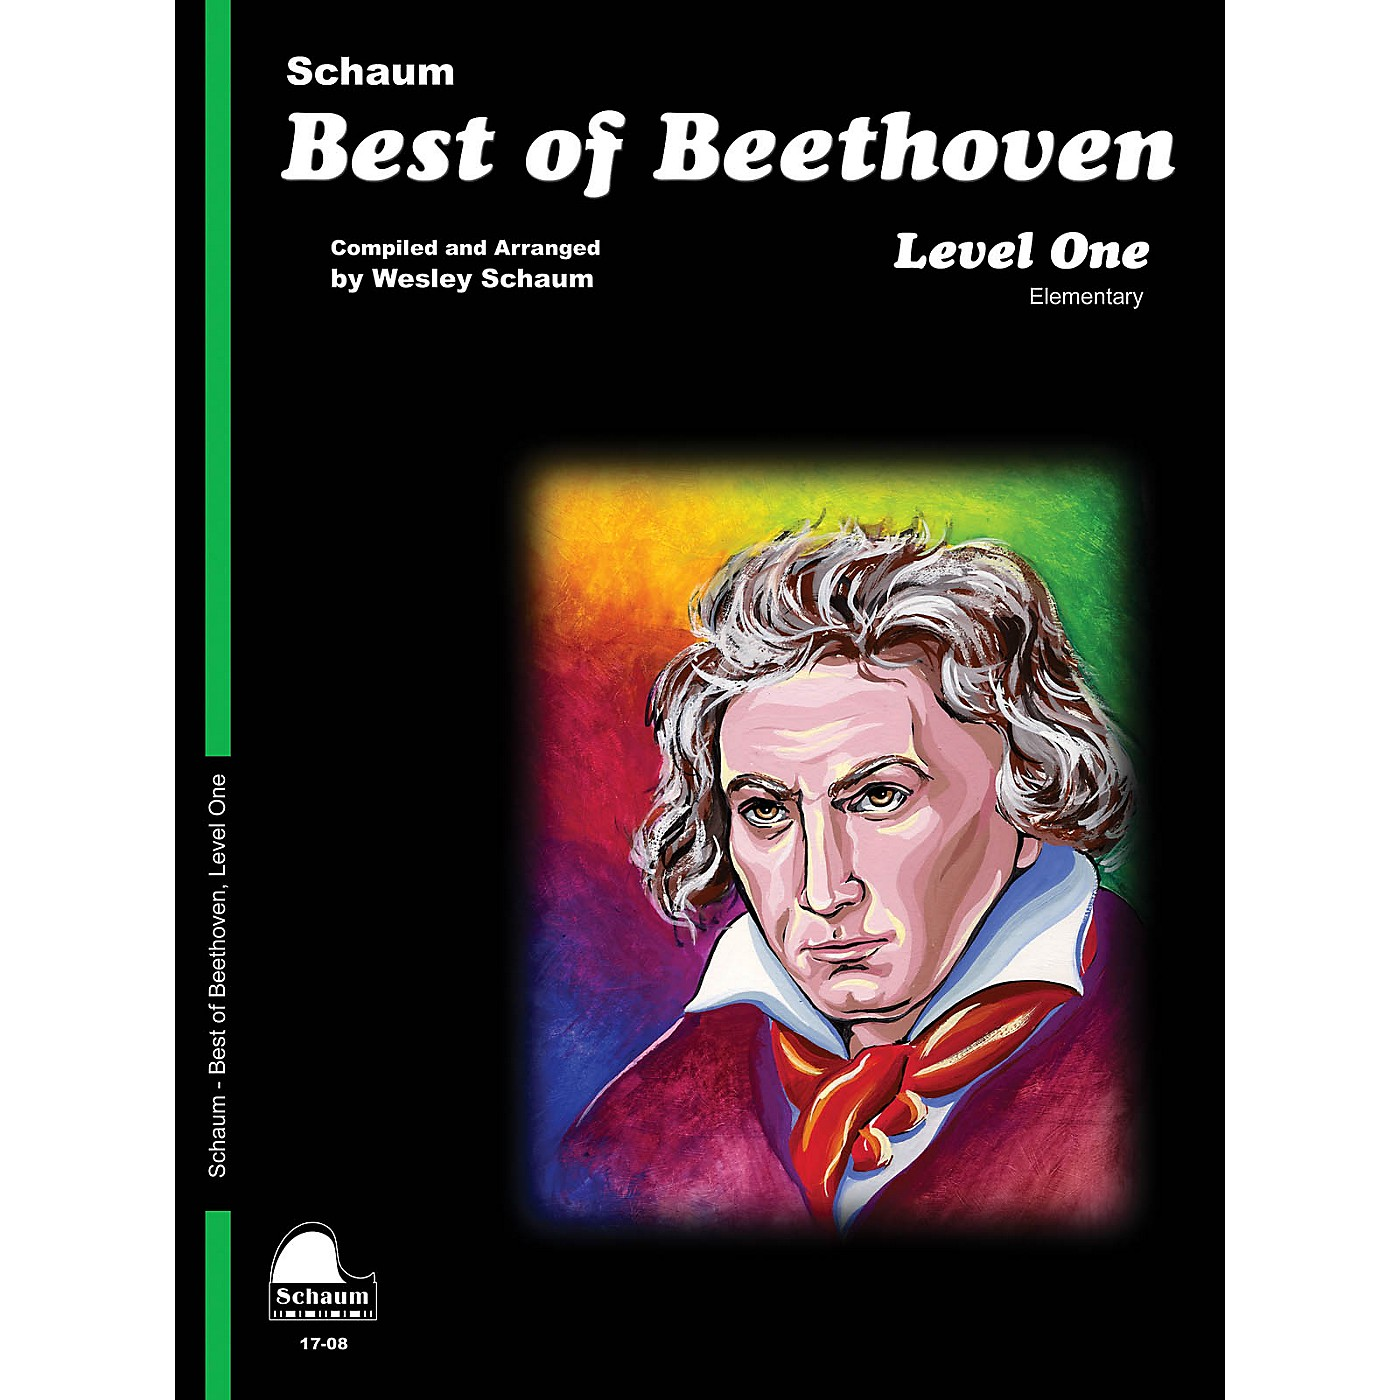 SCHAUM Best of Beethoven (Level 1 Elem Level) Educational Piano Book by Ludwig van Beethoven thumbnail